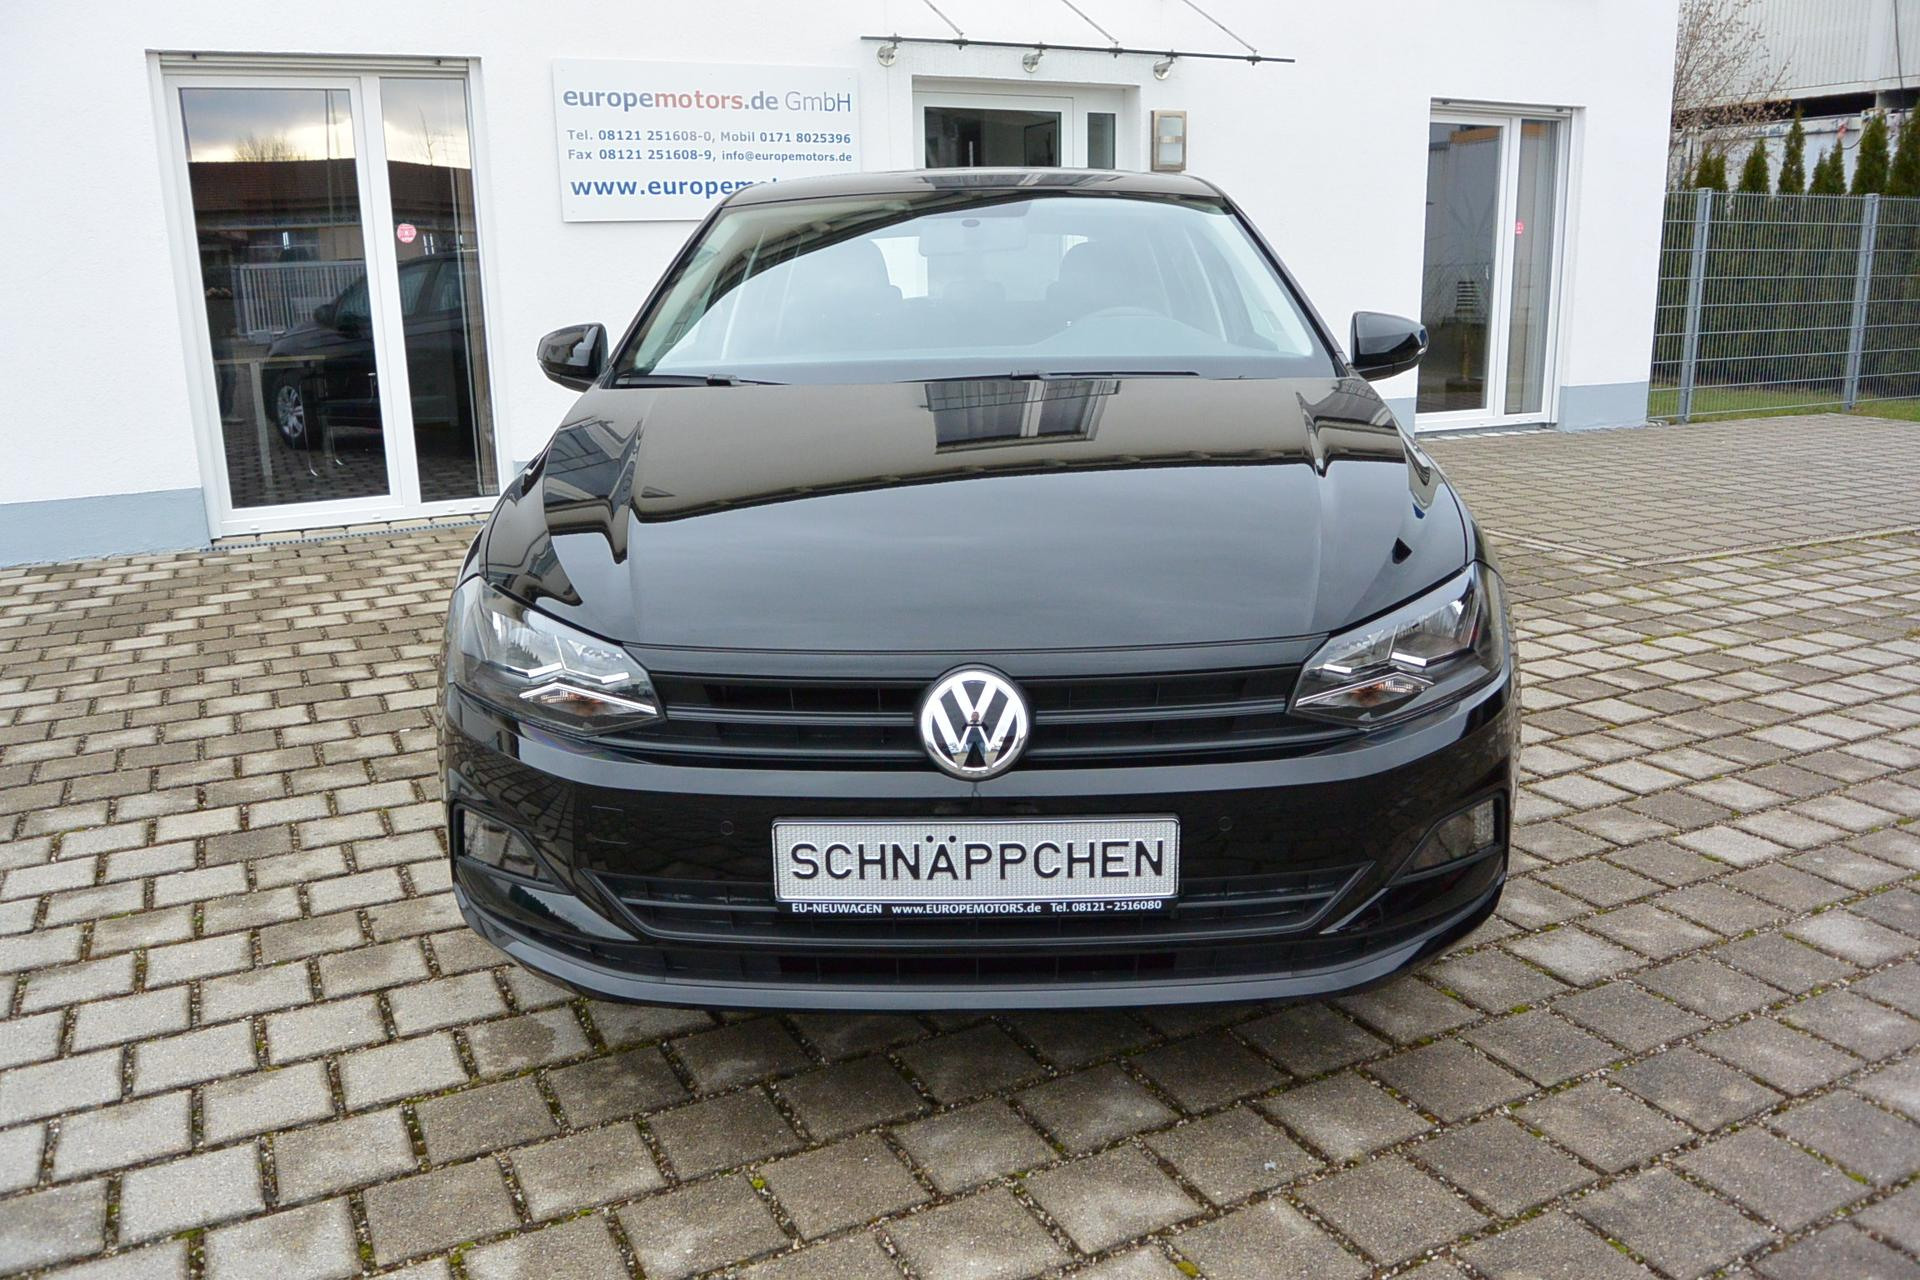 volkswagen polo highline 1 0 tsi 85 kw 115 ps 6 gang schaltgetriebe reimport eu neuwagen zum. Black Bedroom Furniture Sets. Home Design Ideas